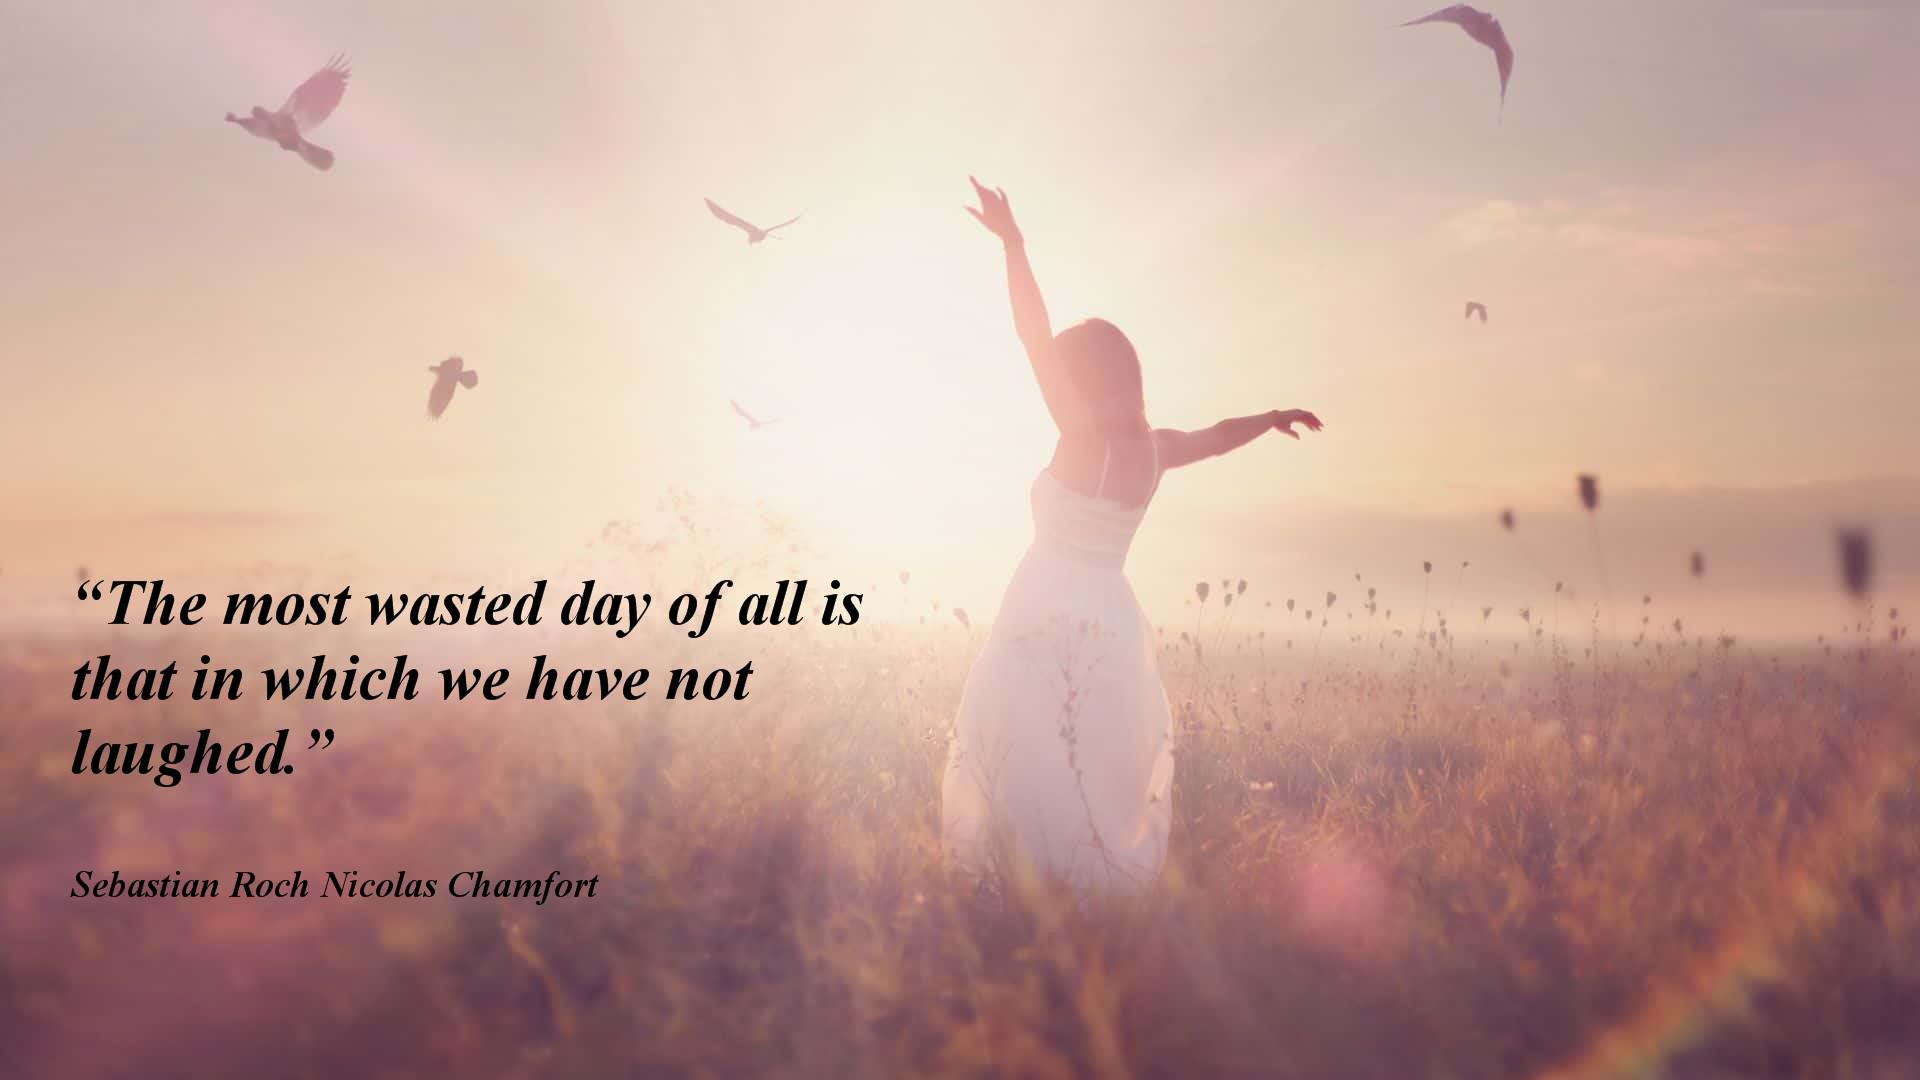 The most wasted day of all is that in which we have not laughed. Chamfort (1920×1080)